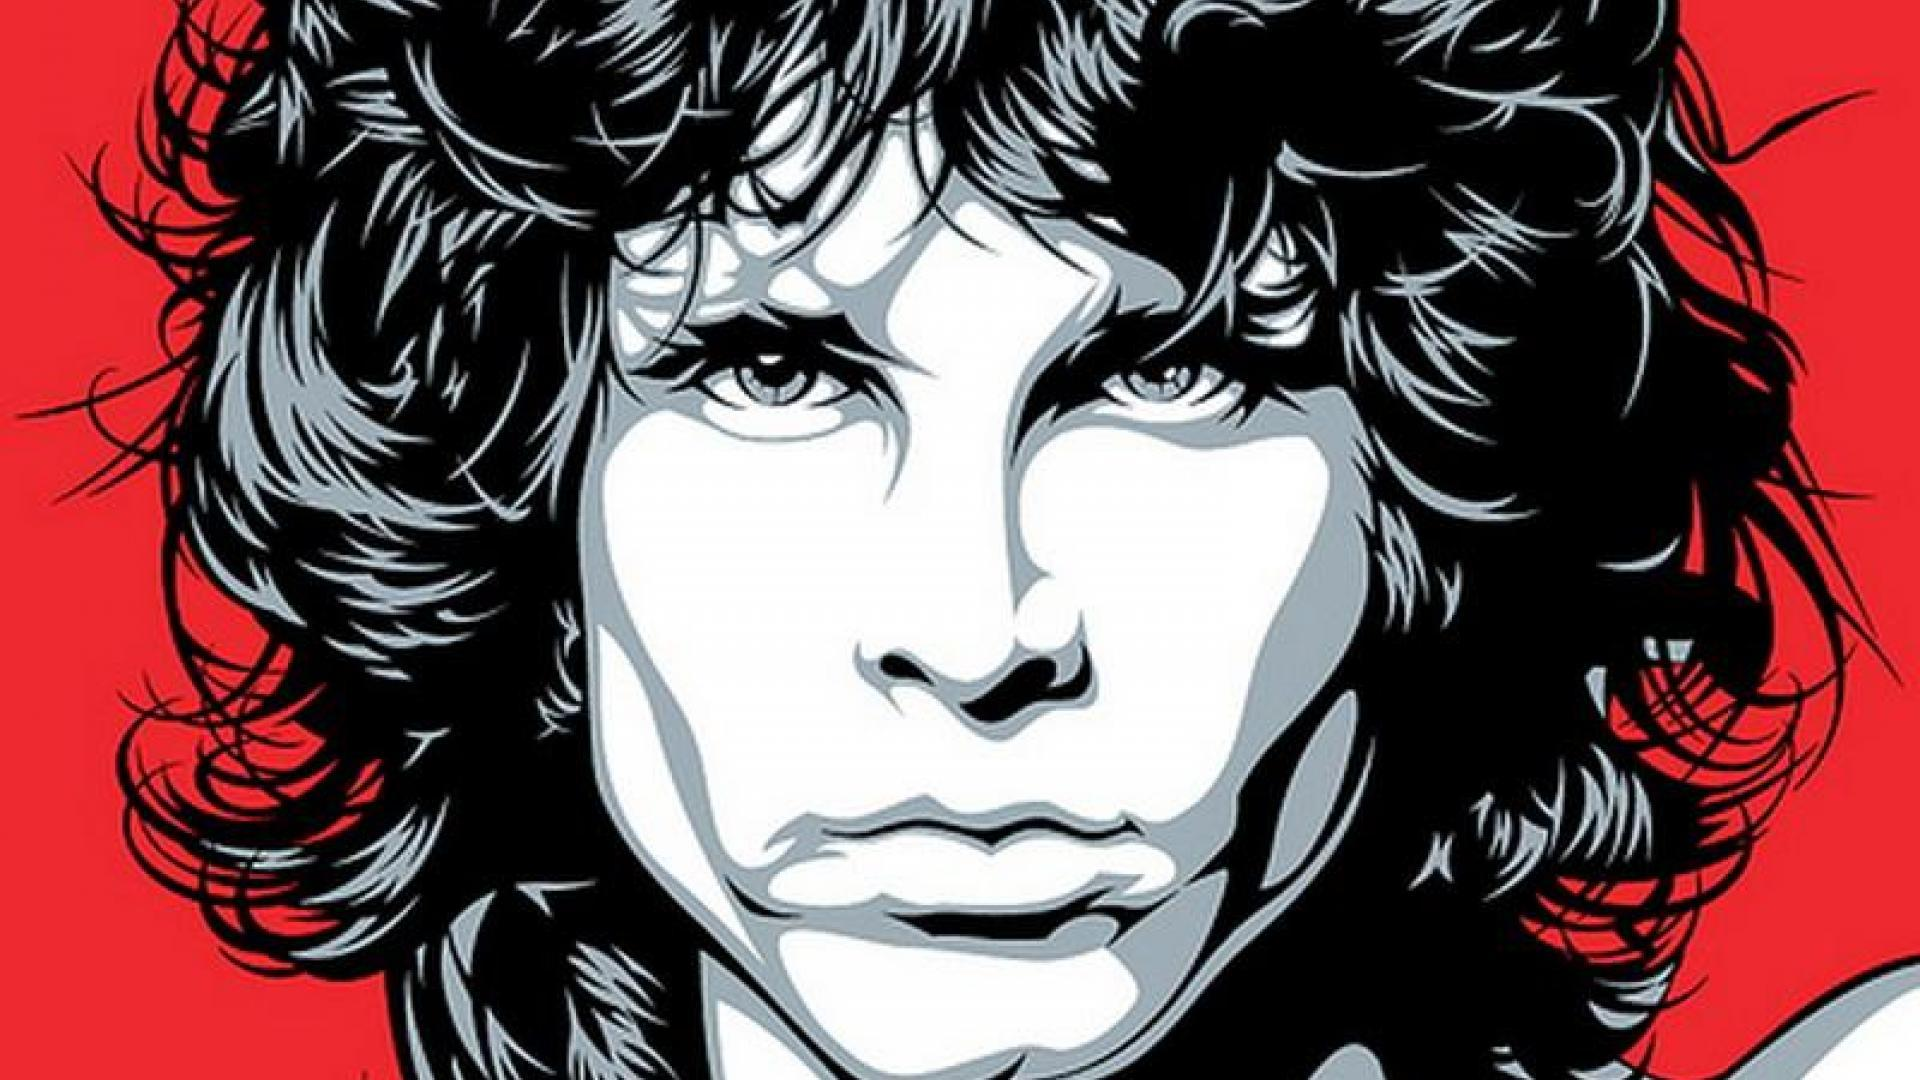 Jim Morrison Wallpapers by Colin Fichtner on FL